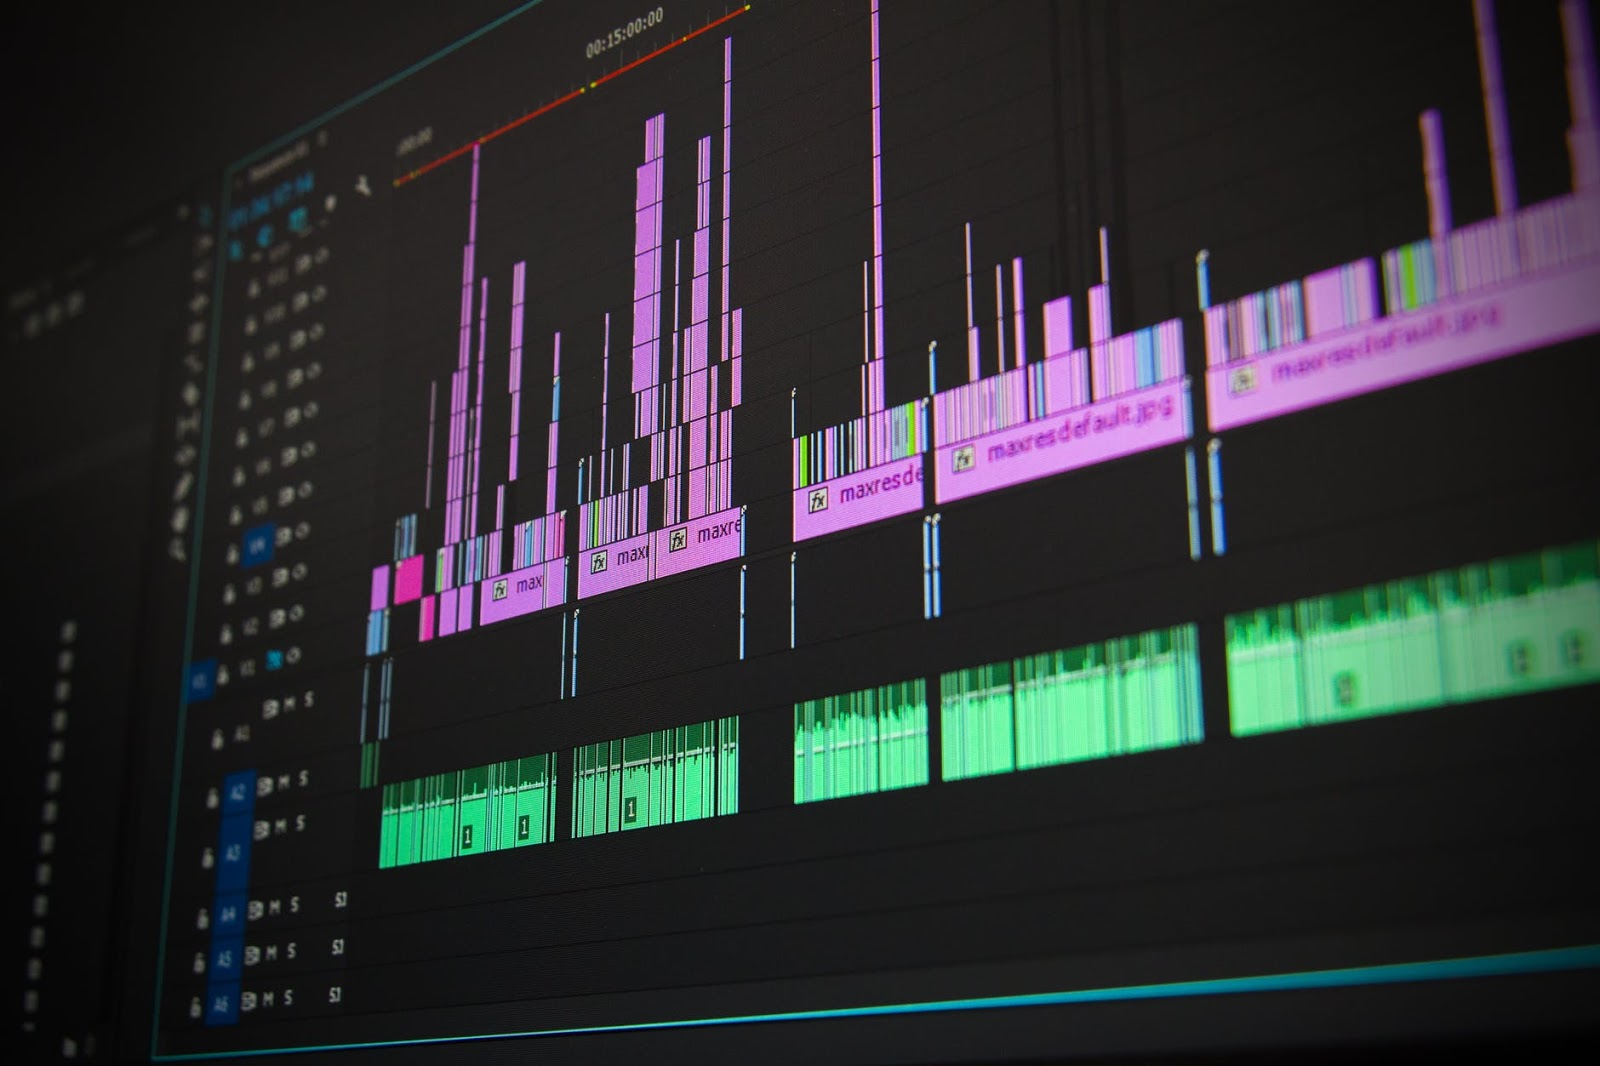 5 Aplikasi / Software EDITING VIDEO Terkeren 2019 ( PC )